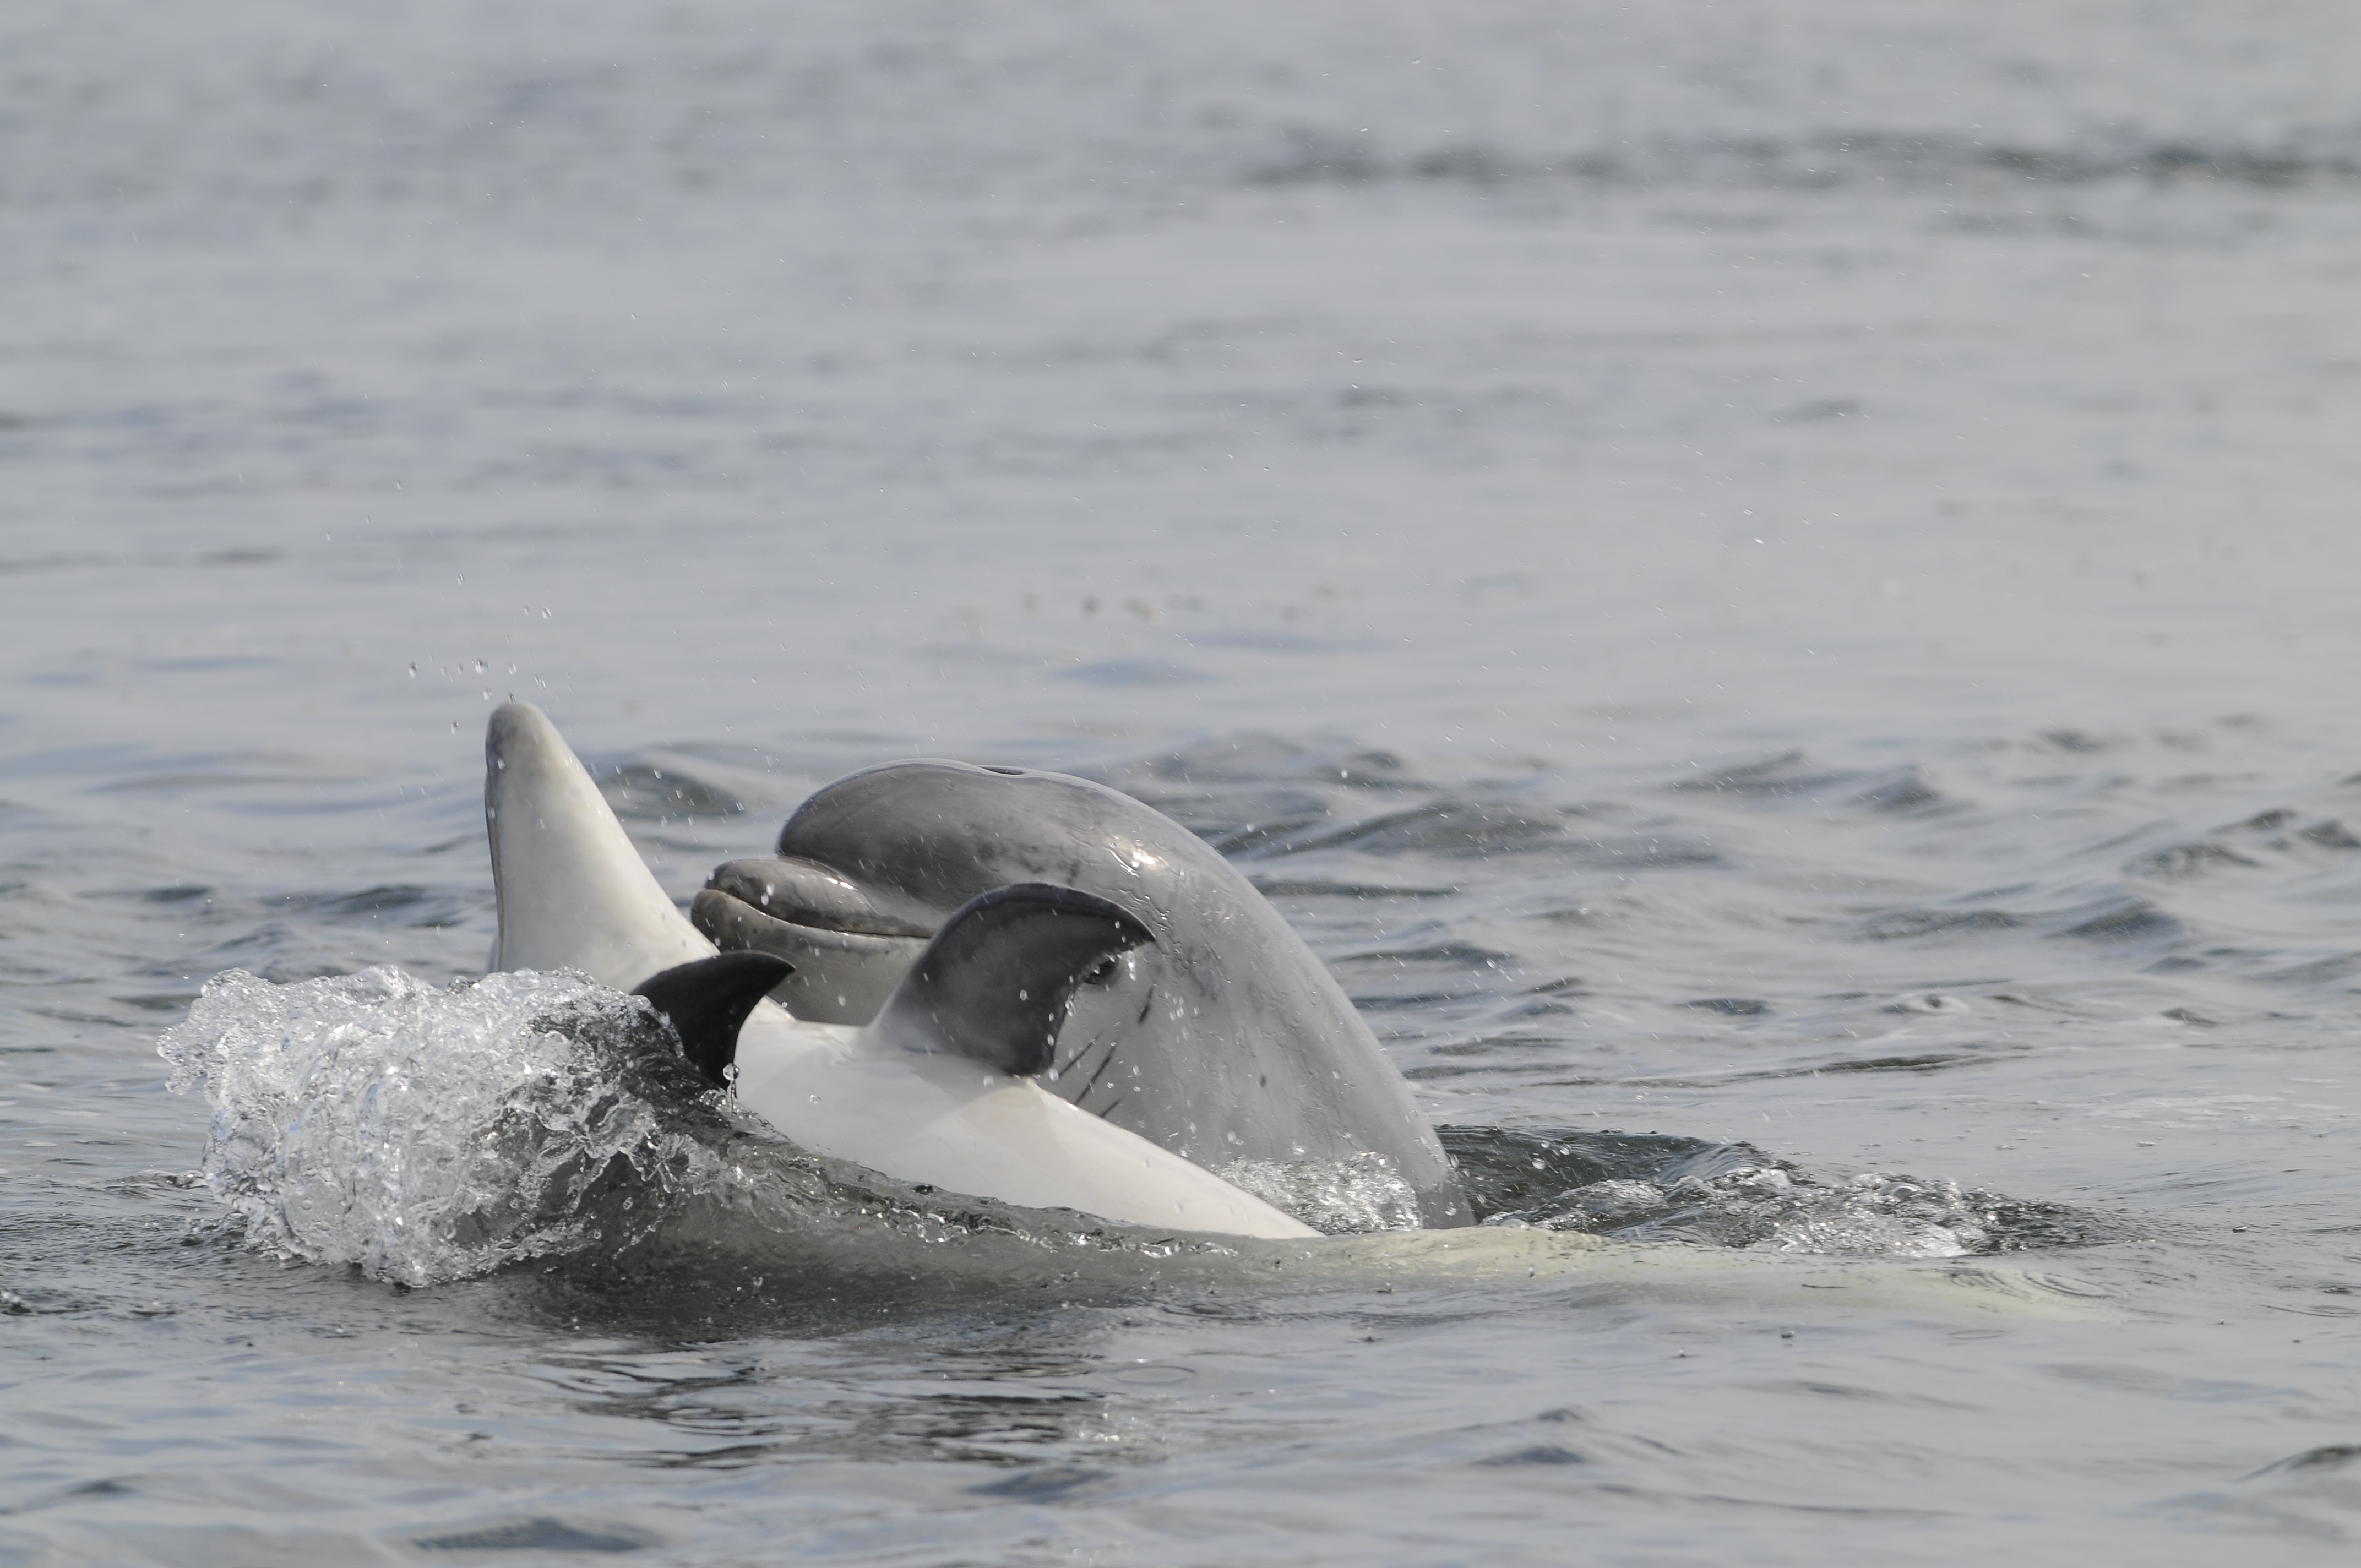 Two dolphins play together in the Moray Firth waters